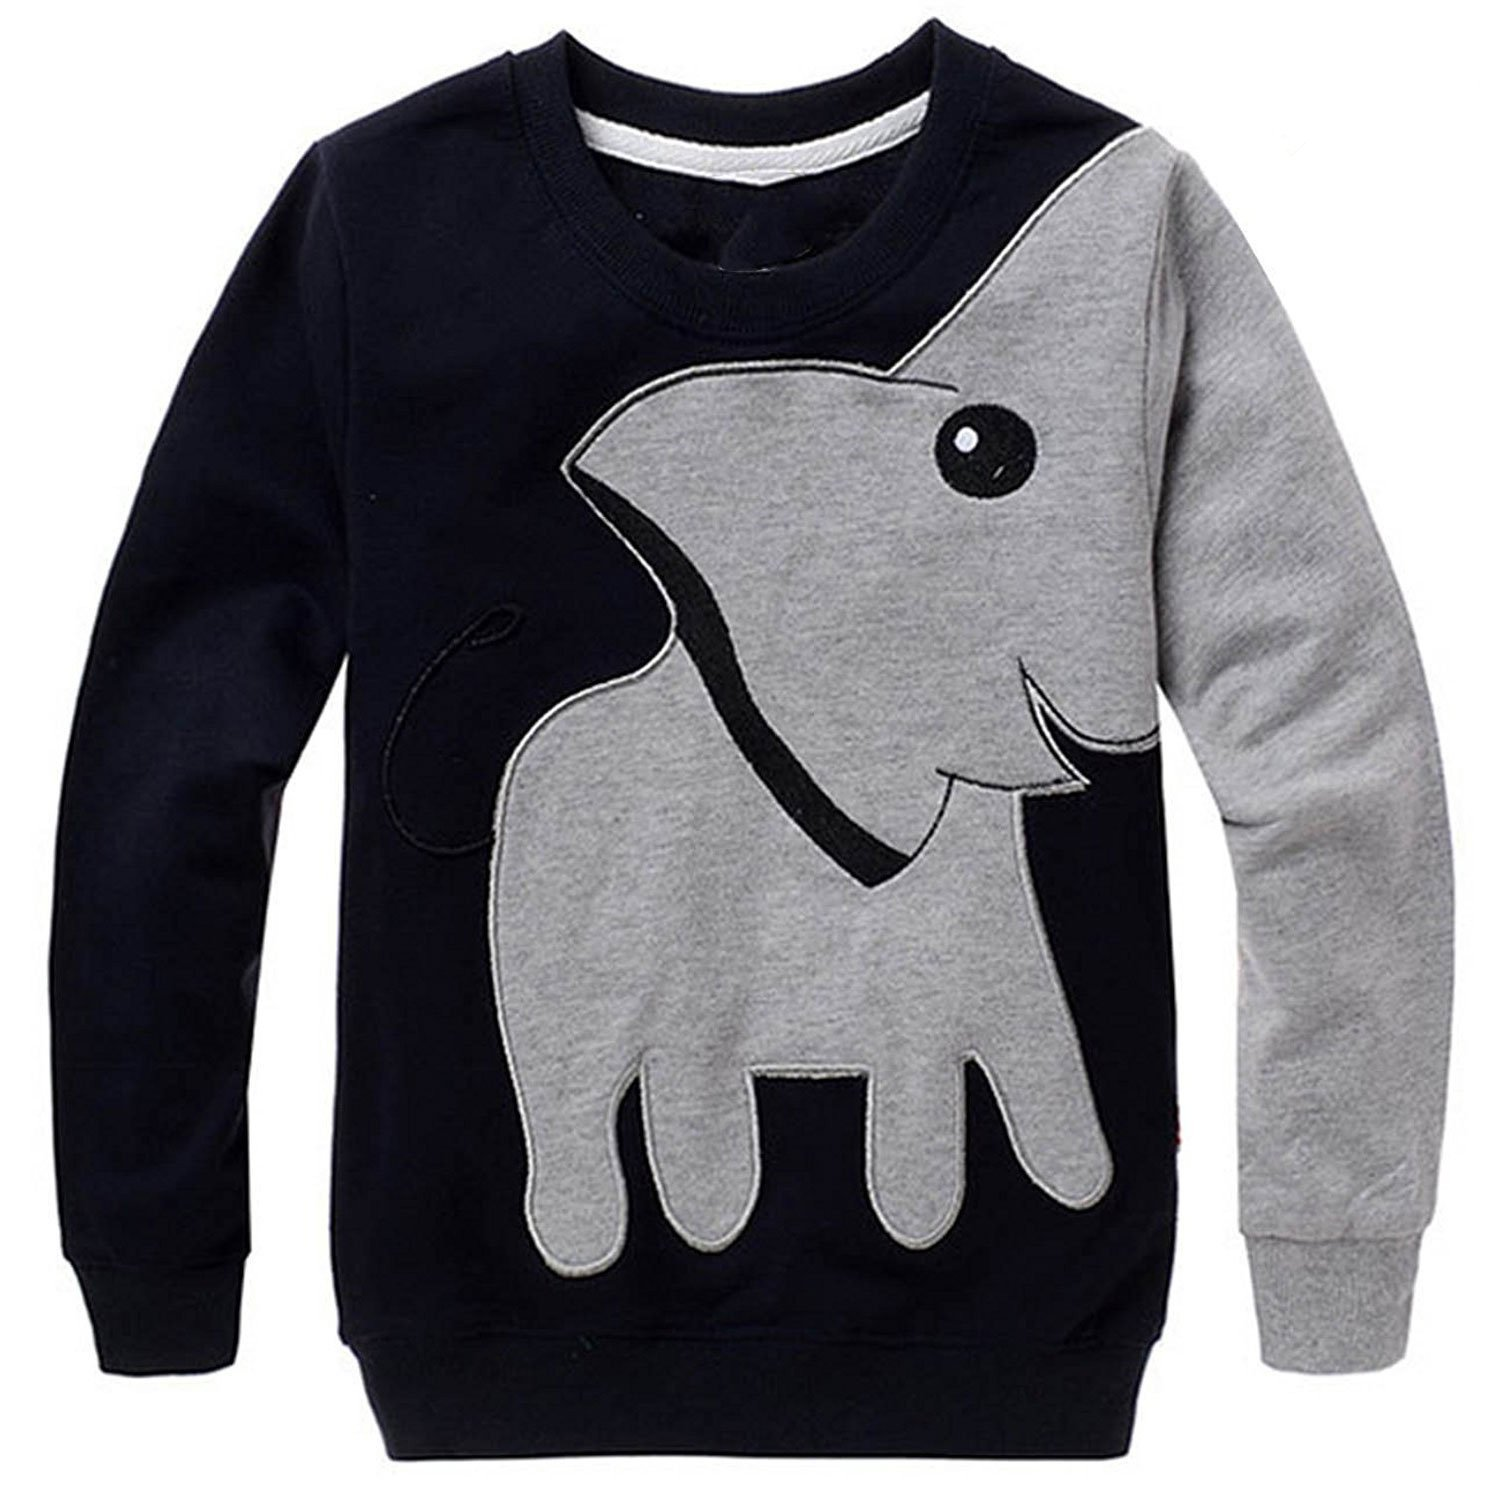 LitBud Toddler Boys Elephant Shirt for Kids Boy Halloween Sweaters Sweatshirt Pullover Casual Tops Jumpers Size 6-7 Years Black